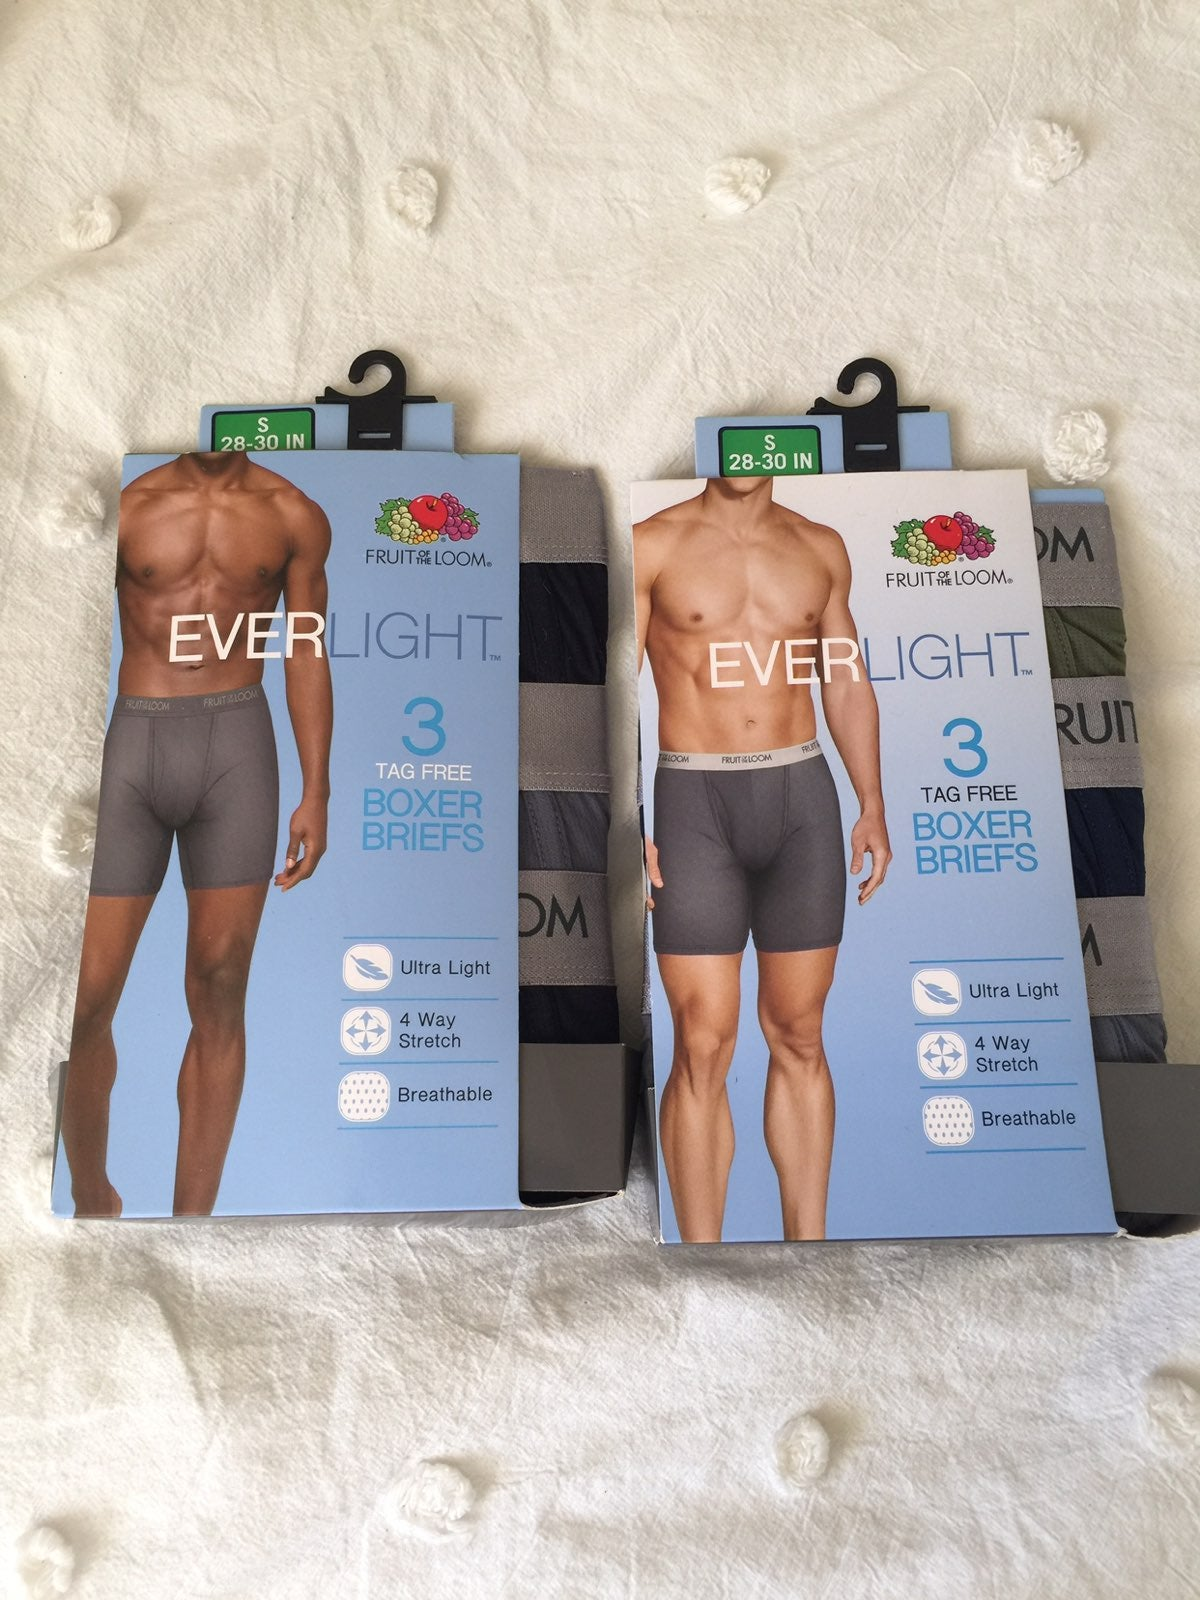 NIP 2 pkgs Everlight Boxer Briefs Sz S